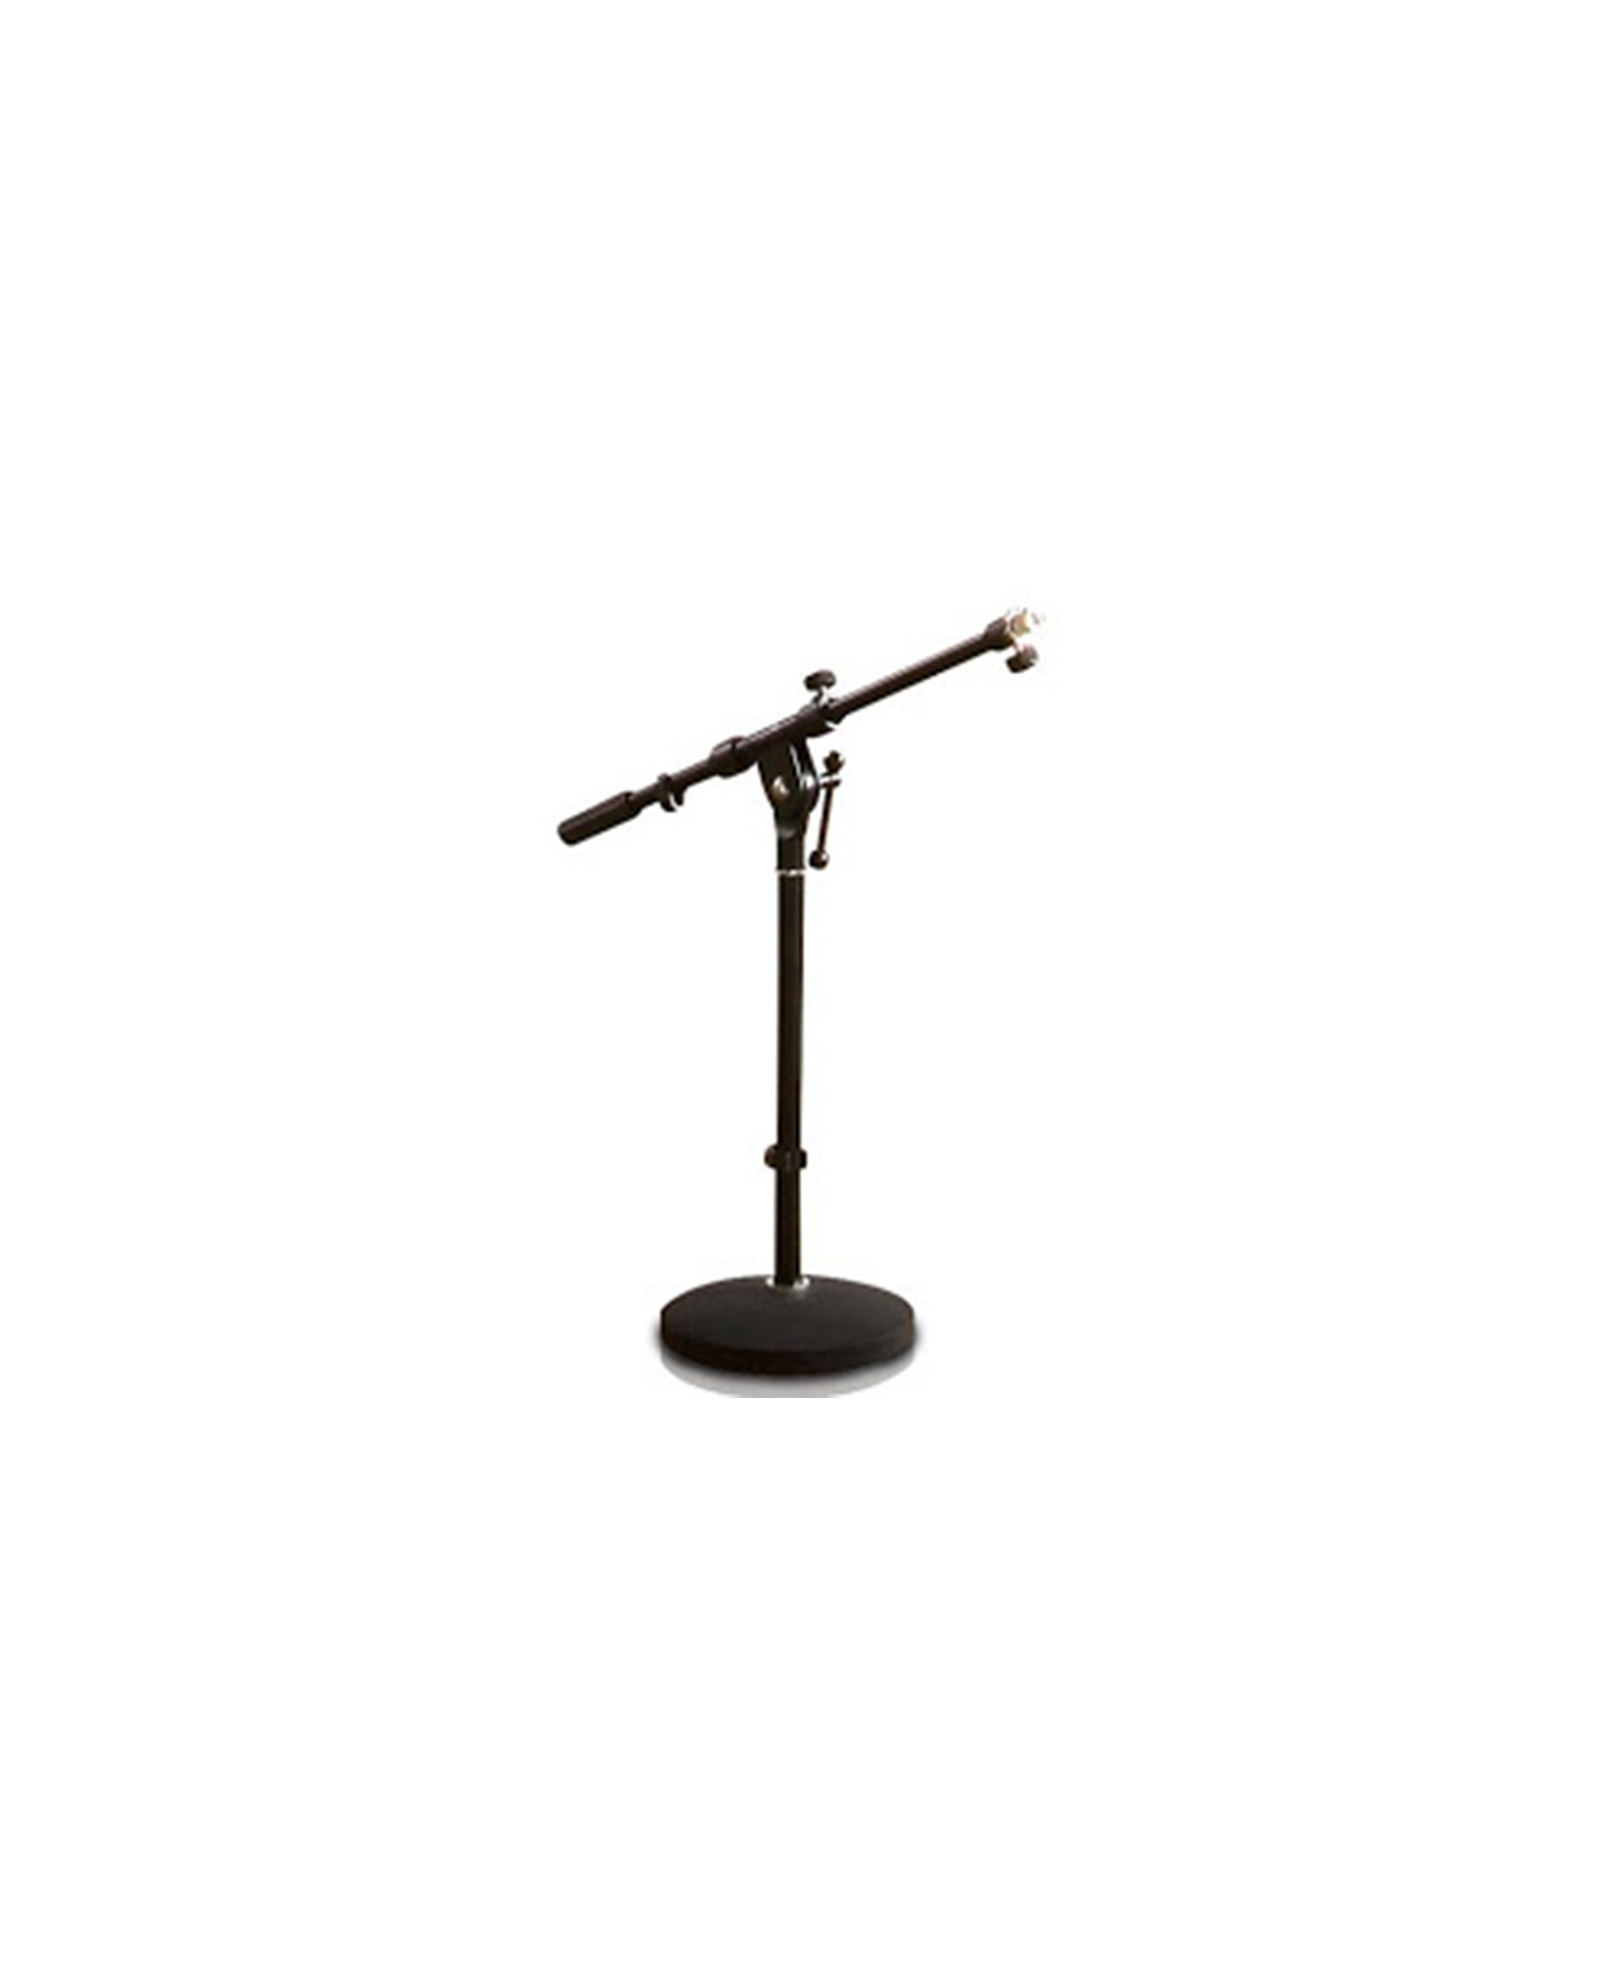 Ashton Armour Mrb50 Small Mic Stand